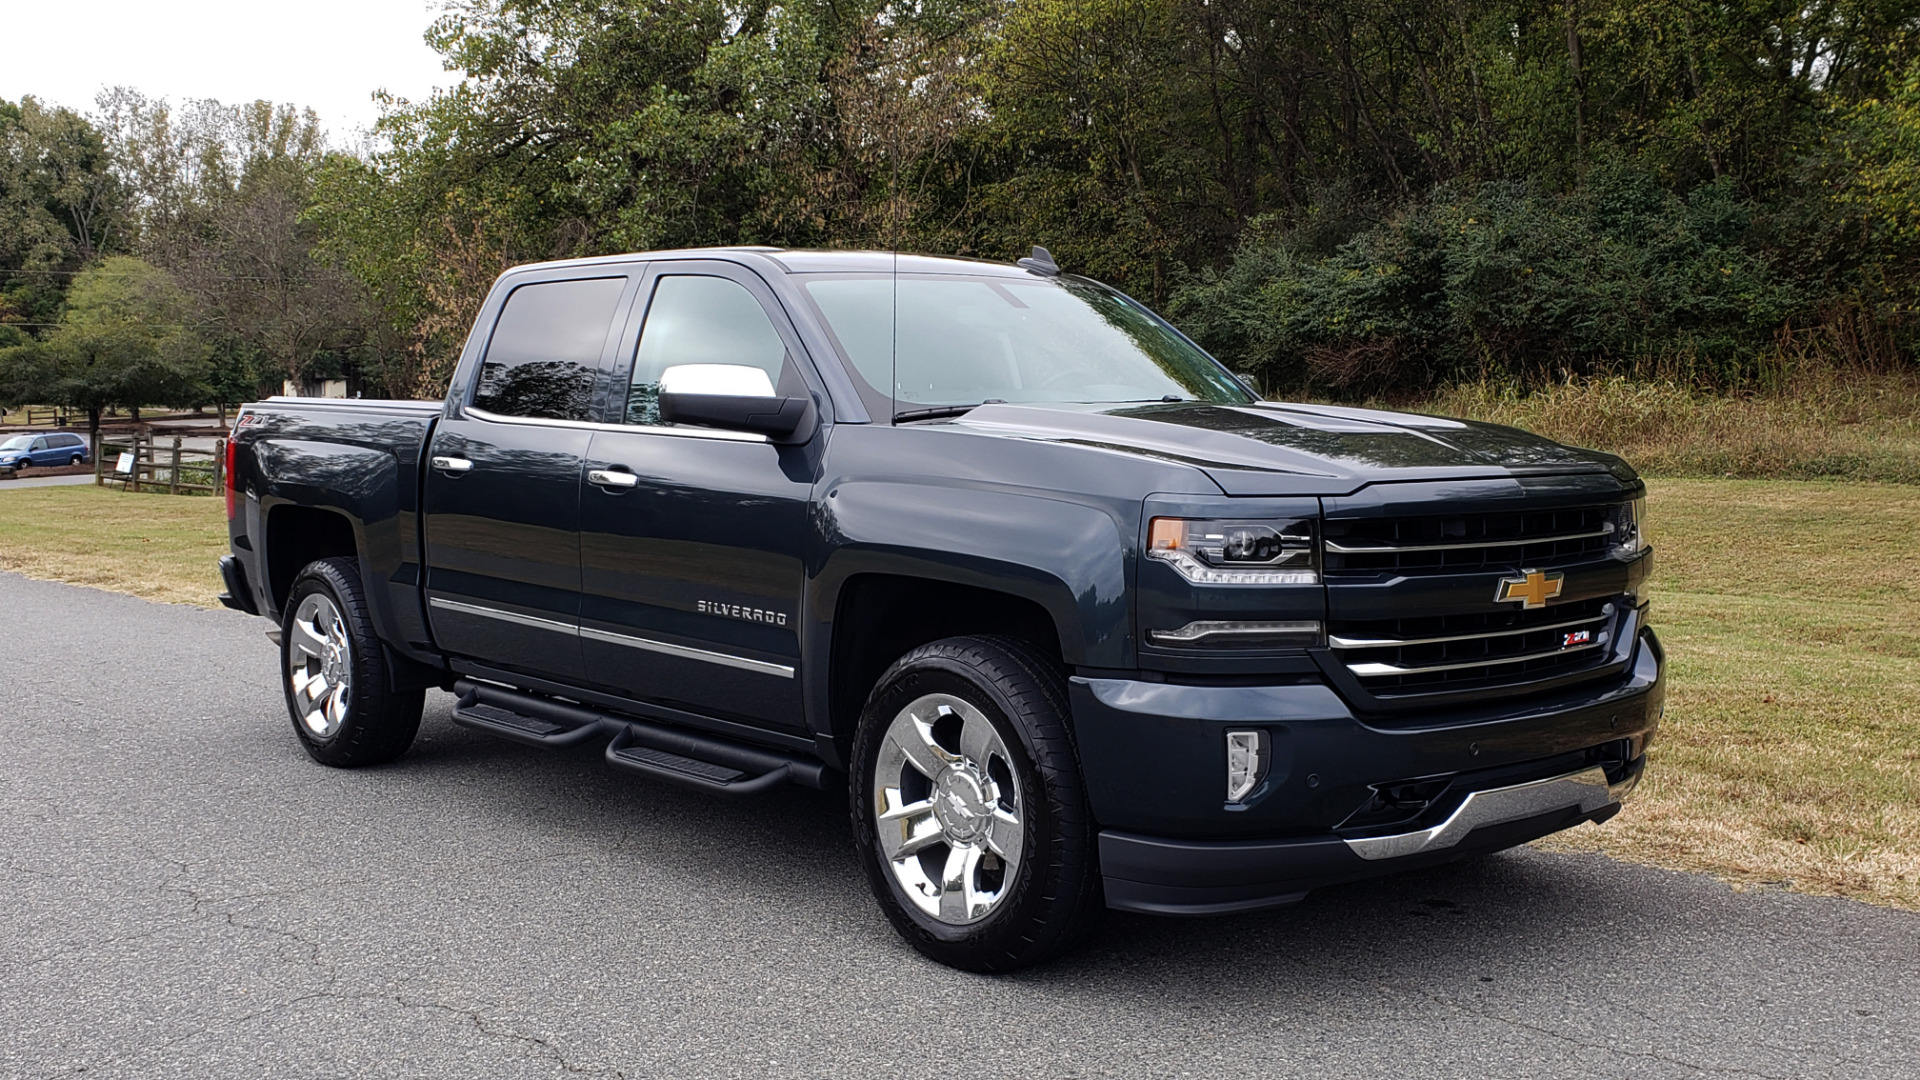 Used 2017 Chevrolet SILVERADO 1500 LTZ 4WD / NAV / BOSE / LEATHER / CAMERA / LOADED for sale Sold at Formula Imports in Charlotte NC 28227 27